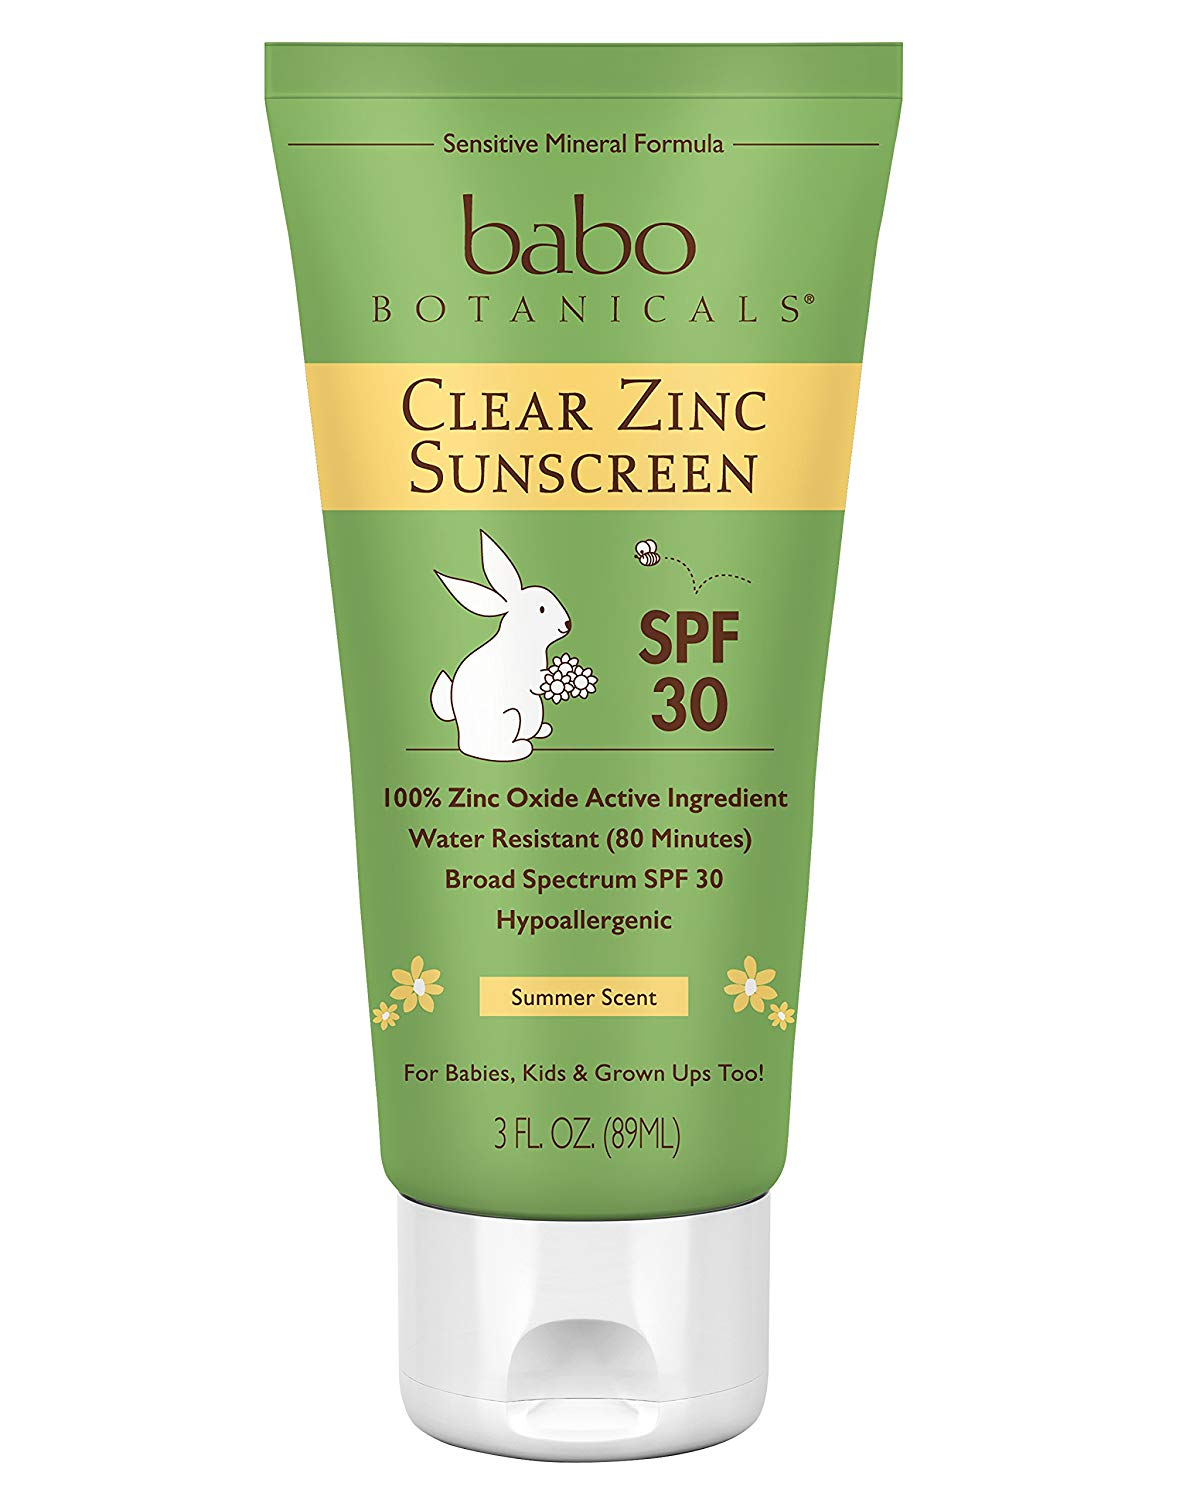 Babo Botanicals Clear Zinc Sunscreen Lotion SPF 30